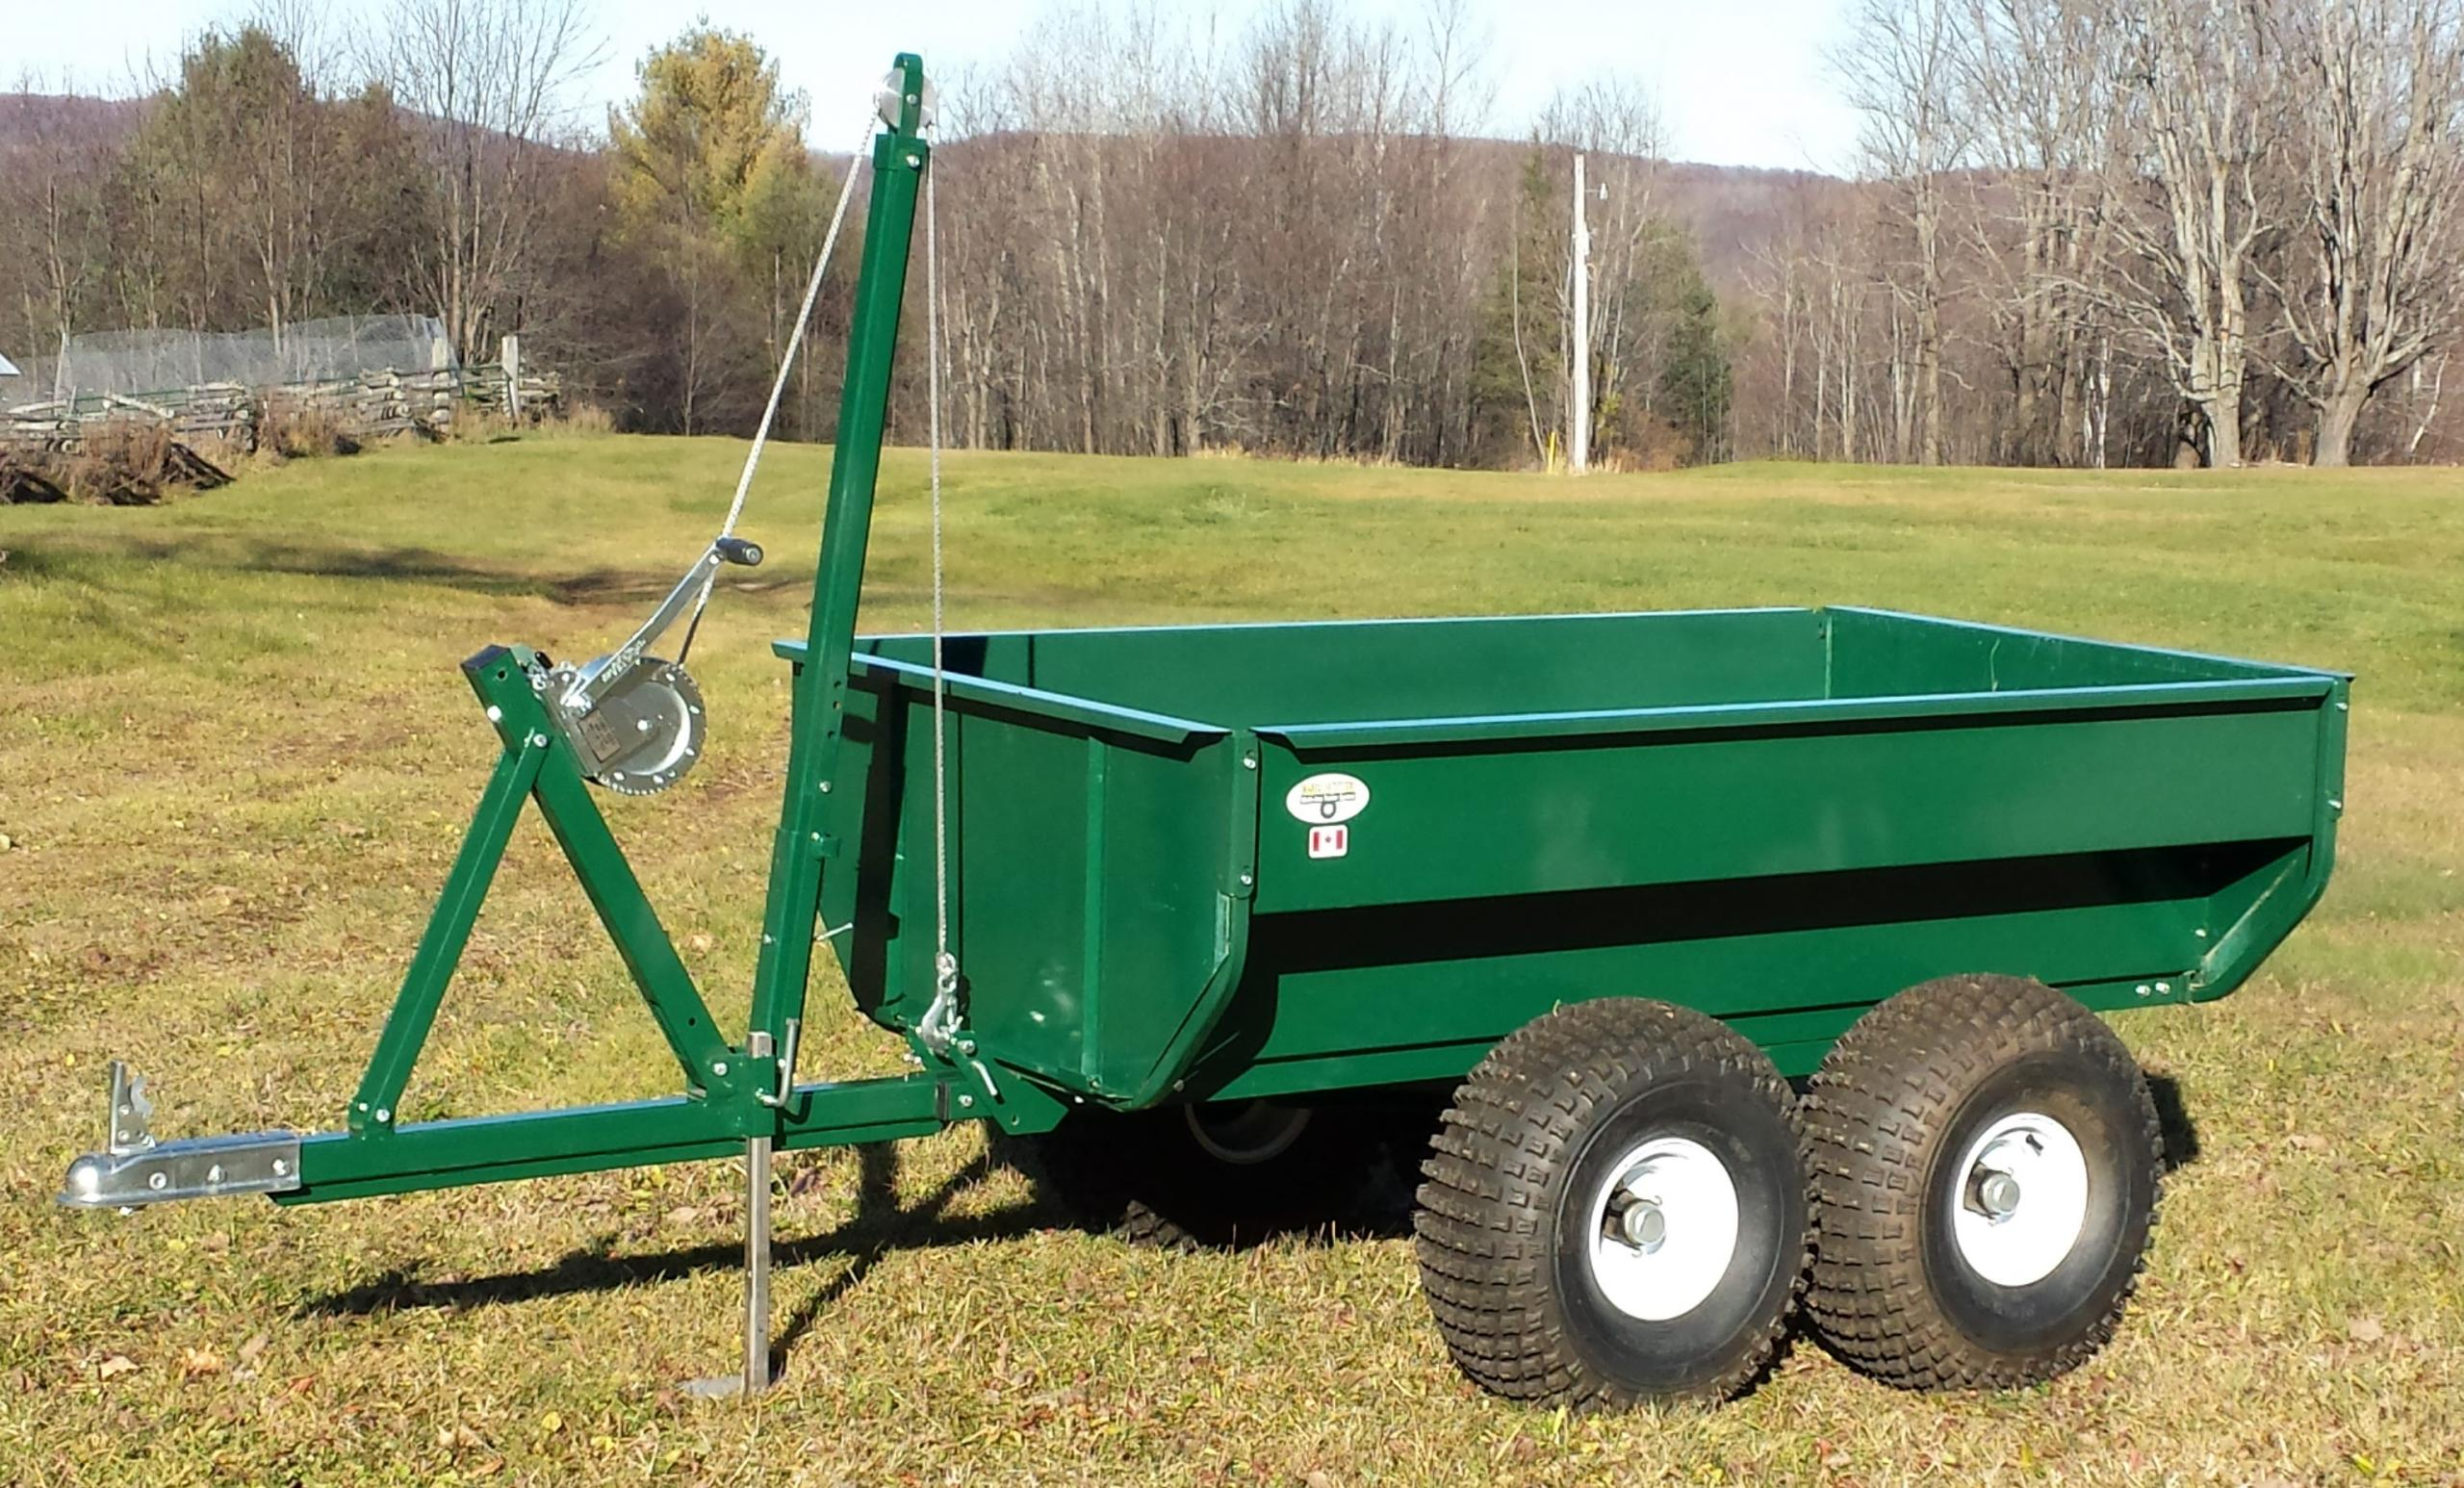 Utility Trailers For Sale Ontario >> MUTS Multi Use Trailer System | ATV Illustrated